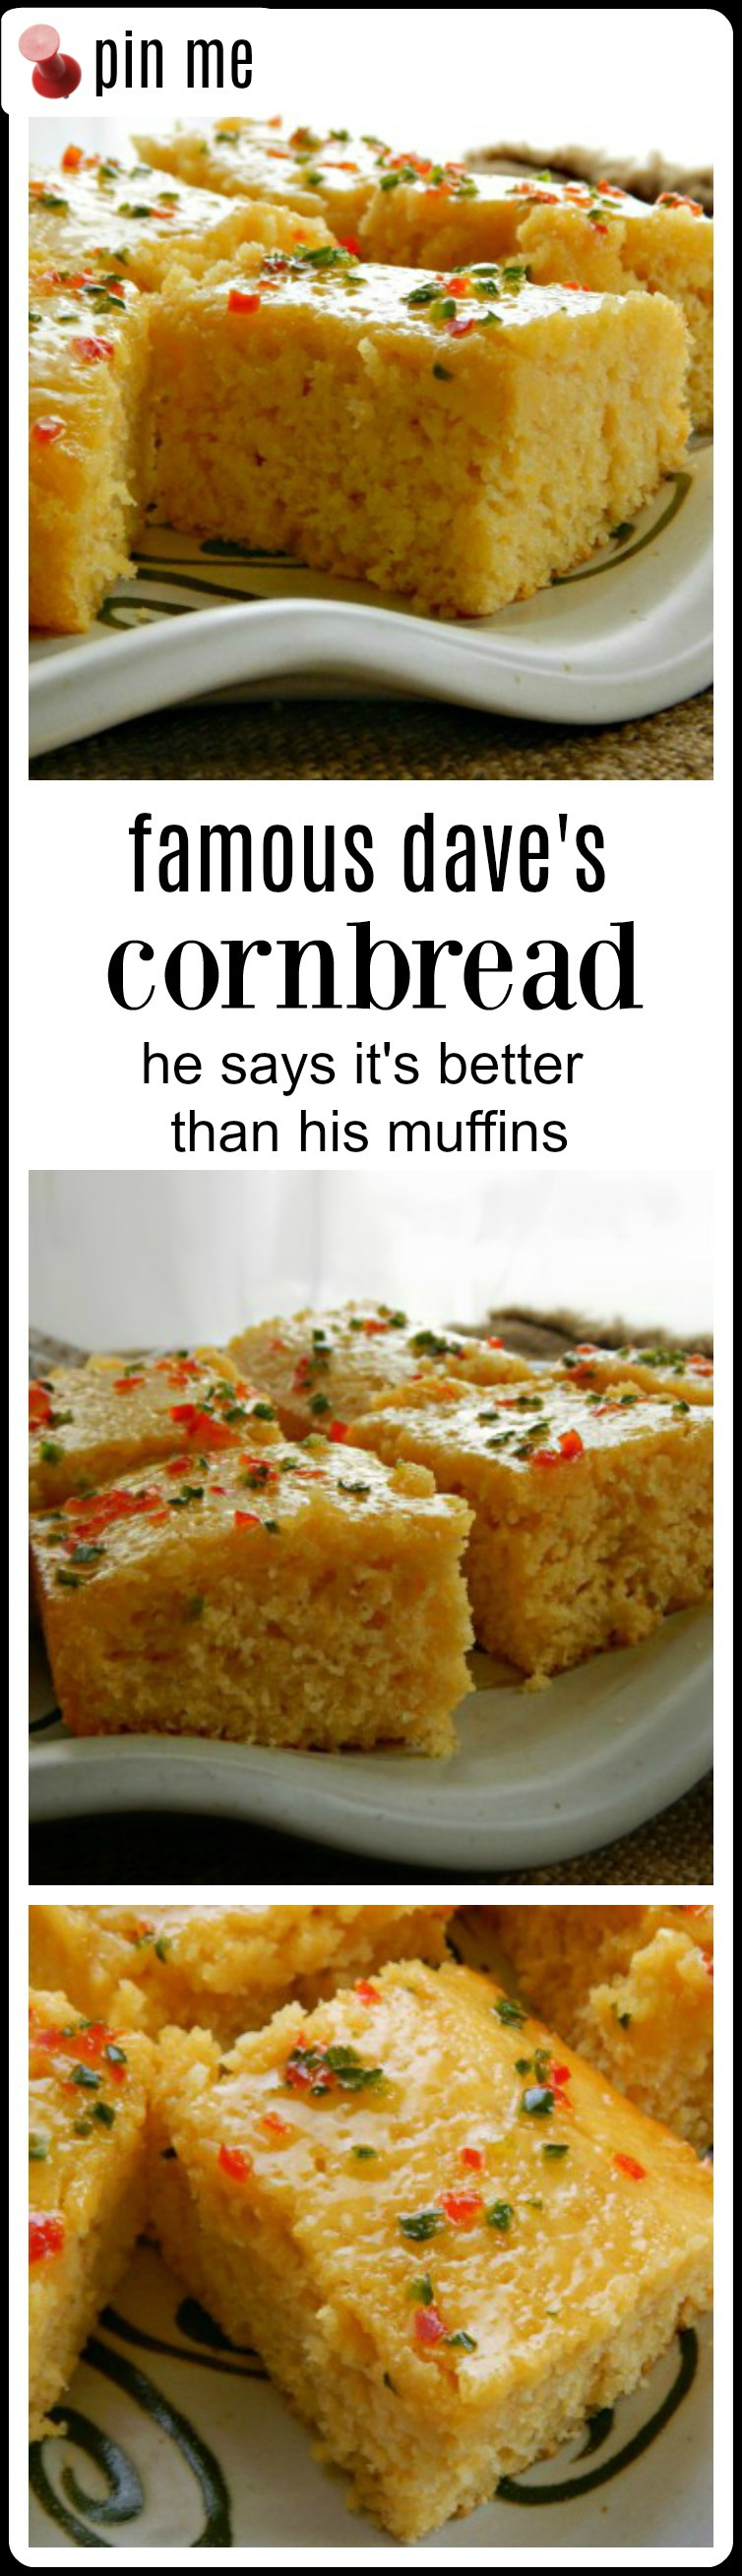 If you want an incredible, moist, fluffy cornbread, you've got to try Famous Dave Anderson's recipe for his Famous Dave's Cornbread. He claims it's even better than his corn muffins I agree! Use the Jalapeno Honey Glaze or serve with Honey Butter. #FamousDavesCornbread #FamousDavesMuffins